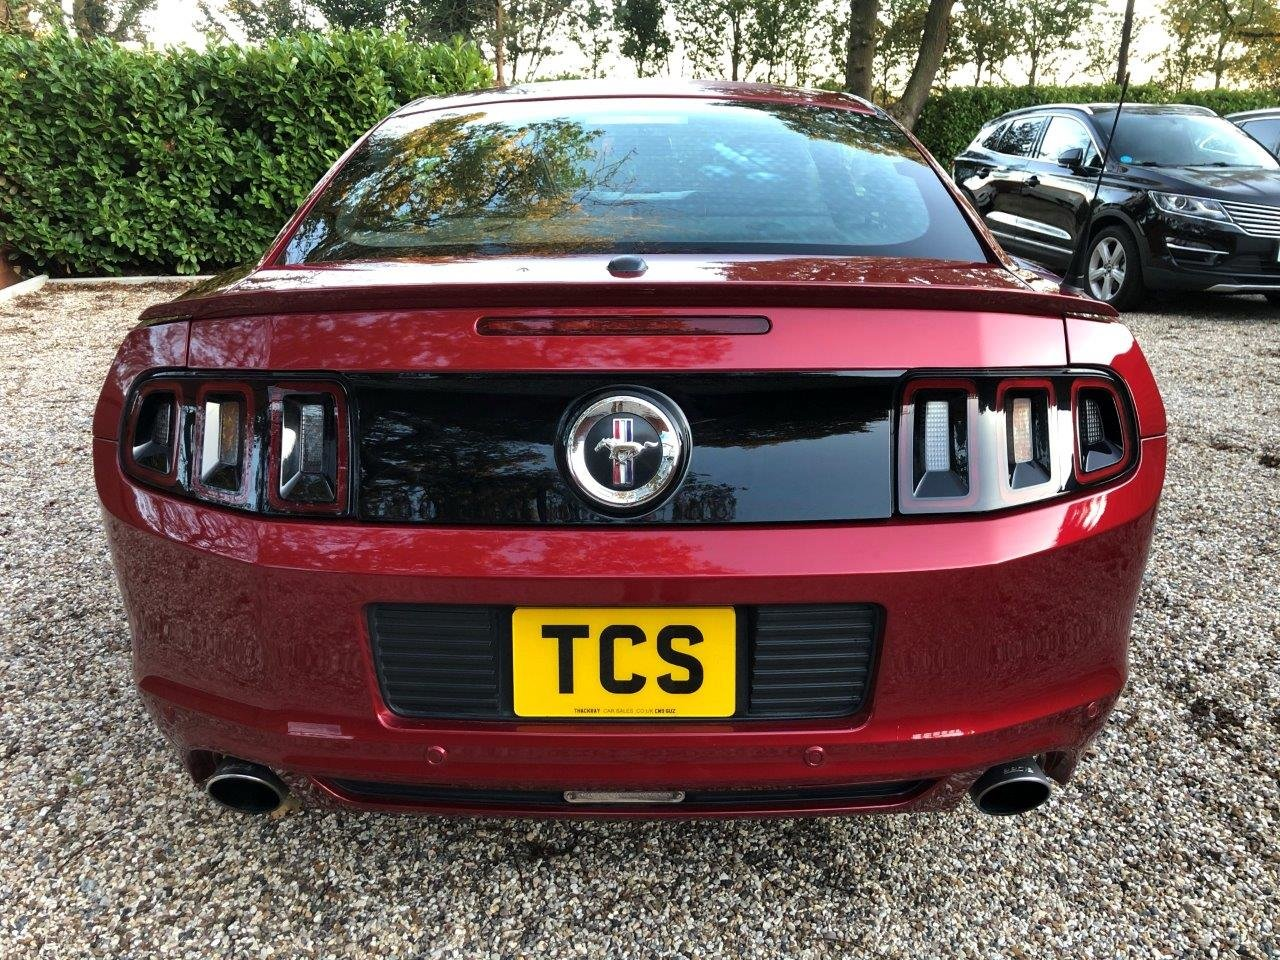 2014 15-Plate UK Registered Mustang Premium Fastback LHD Auto For Sale (picture 5 of 6)